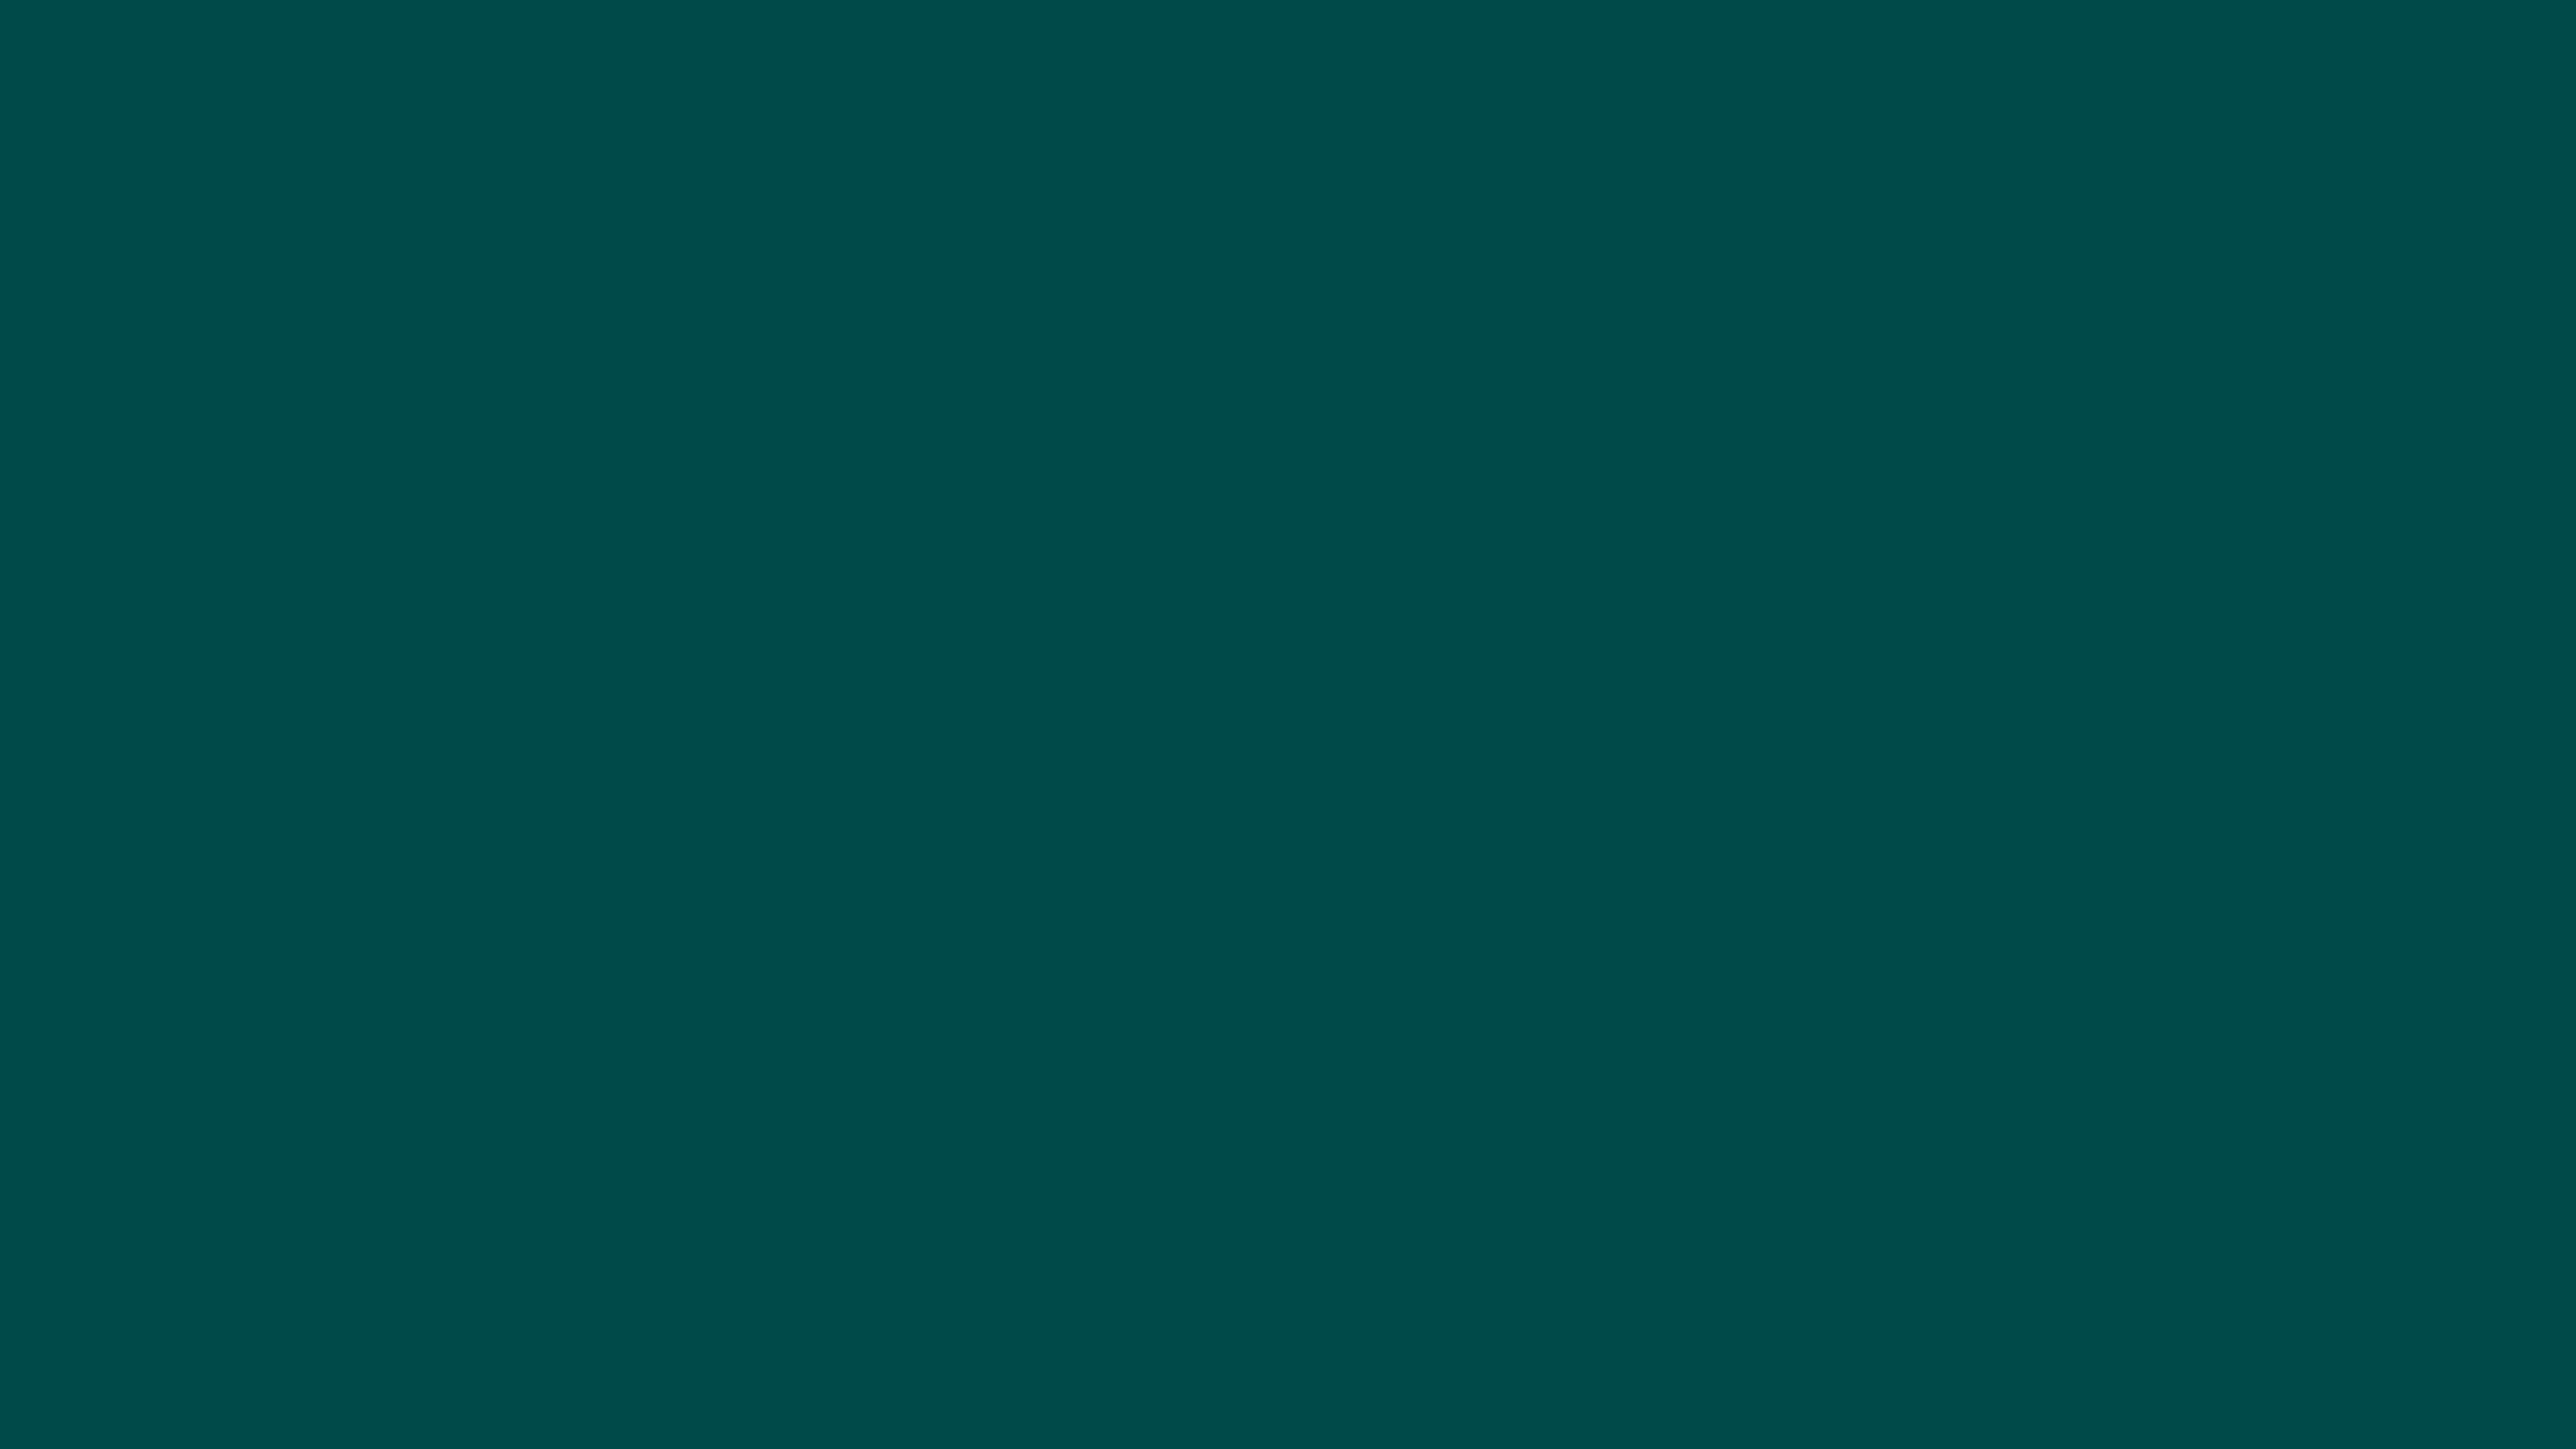 3840x2160 Deep Jungle Green Solid Color Background